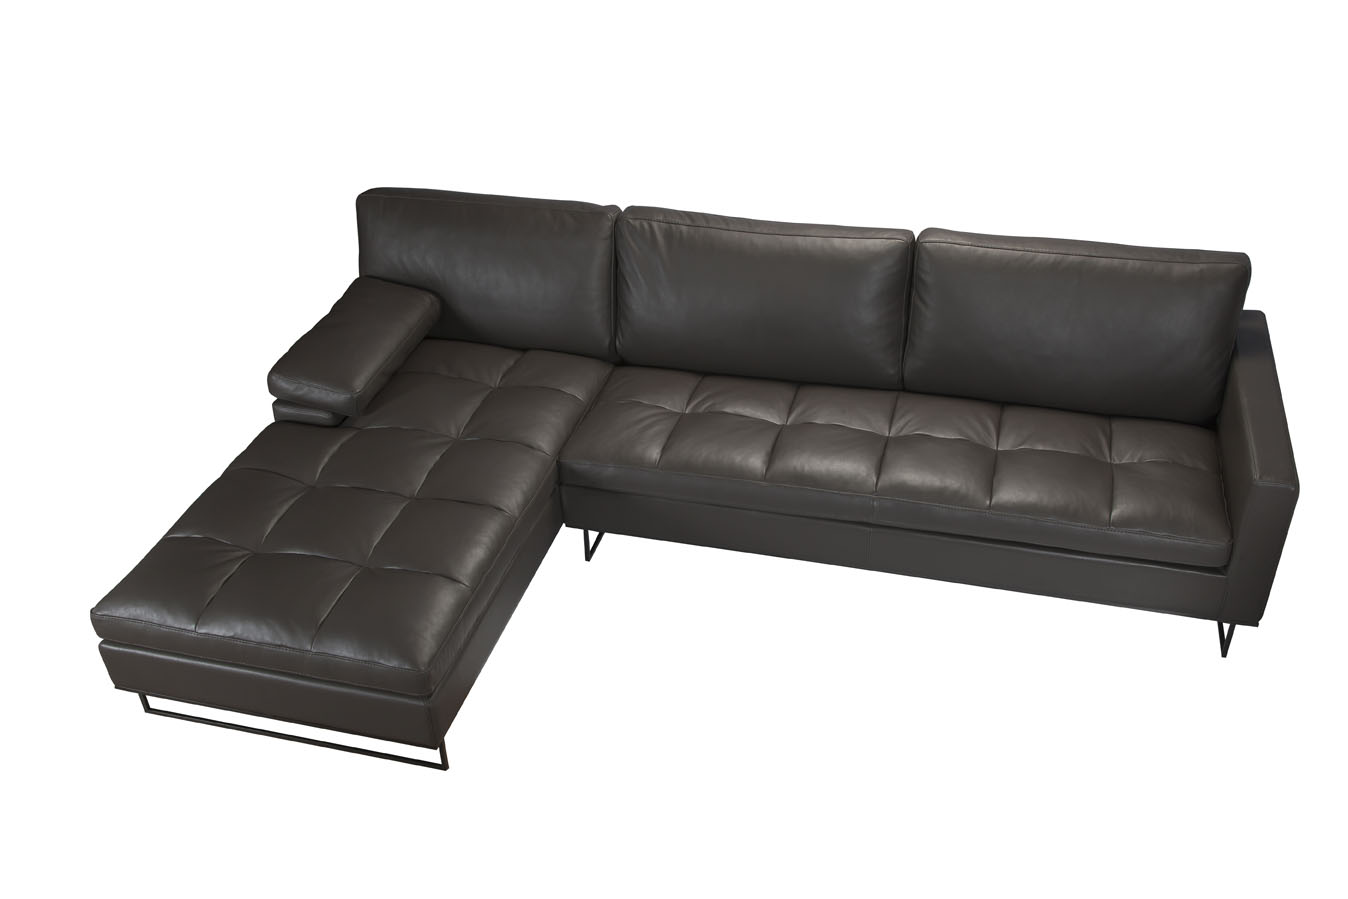 Saint Clair L Shaped Sofa Quilted Seat Chaise Domo